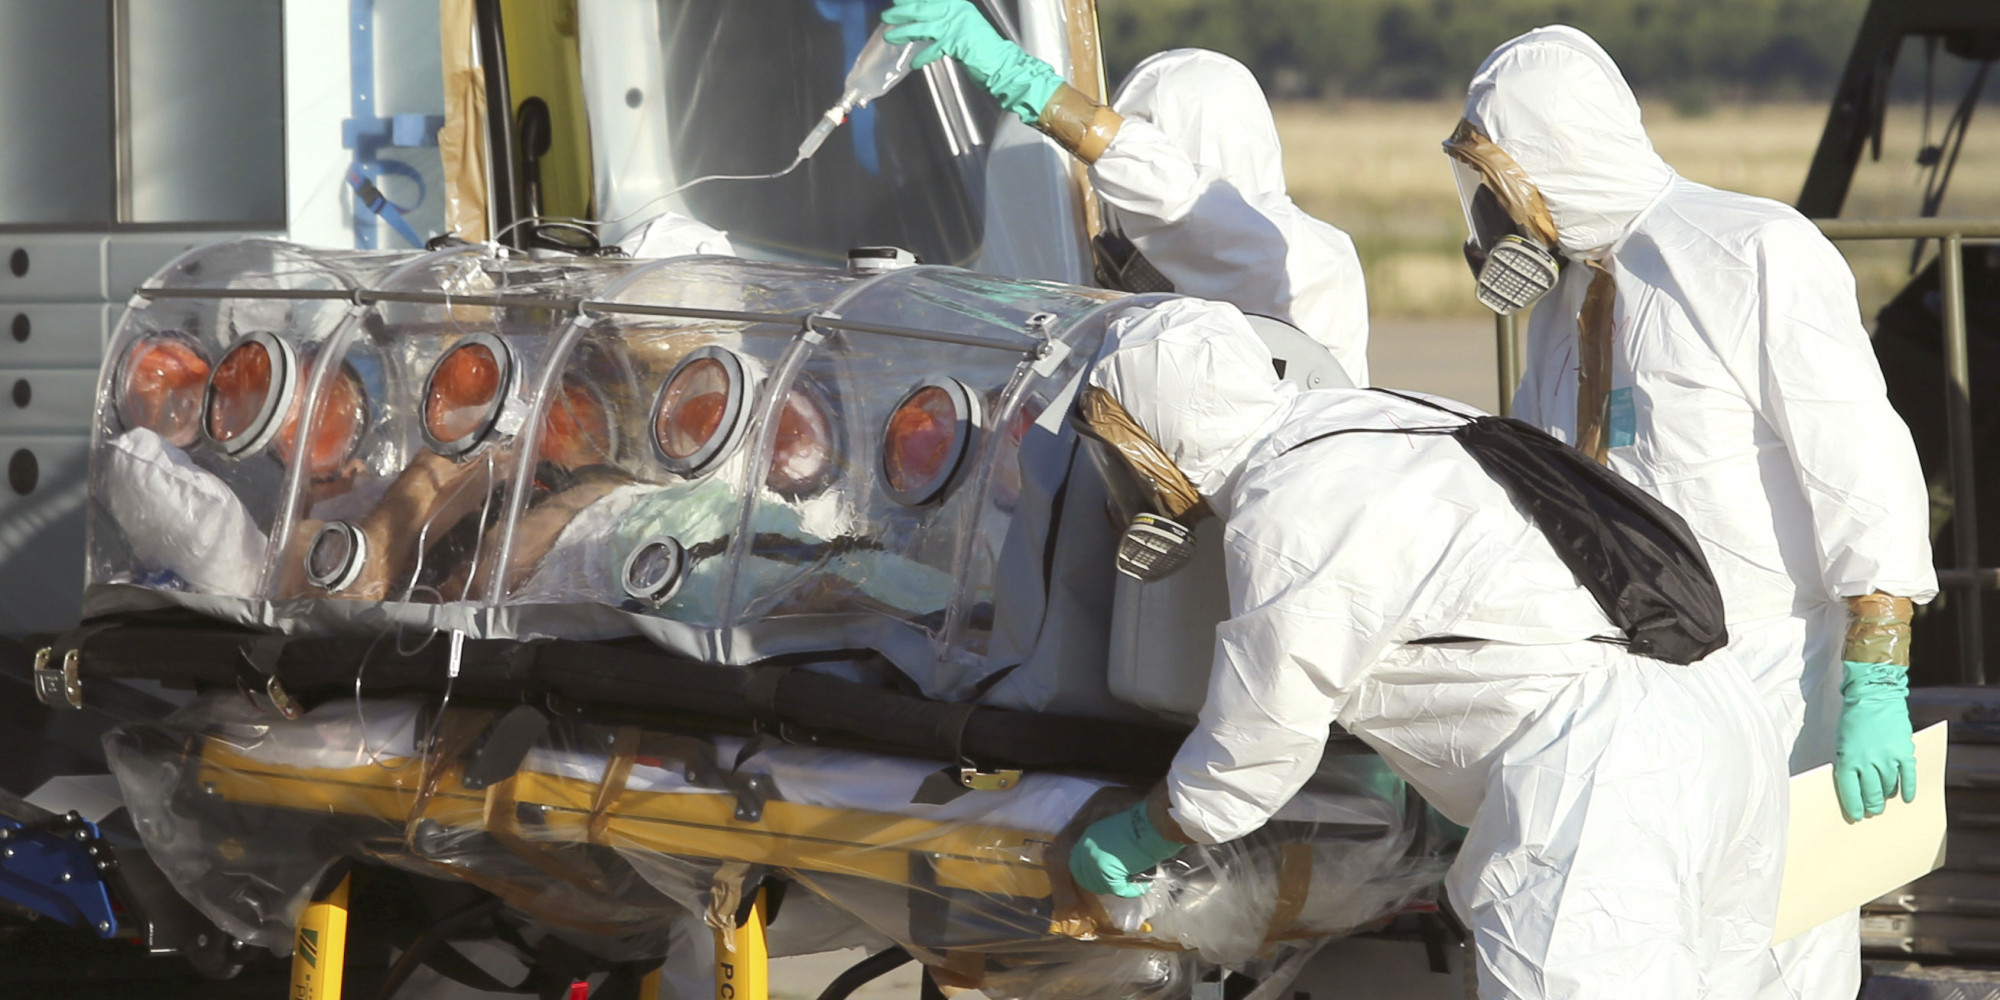 It's time for the military to take pandemics seriously